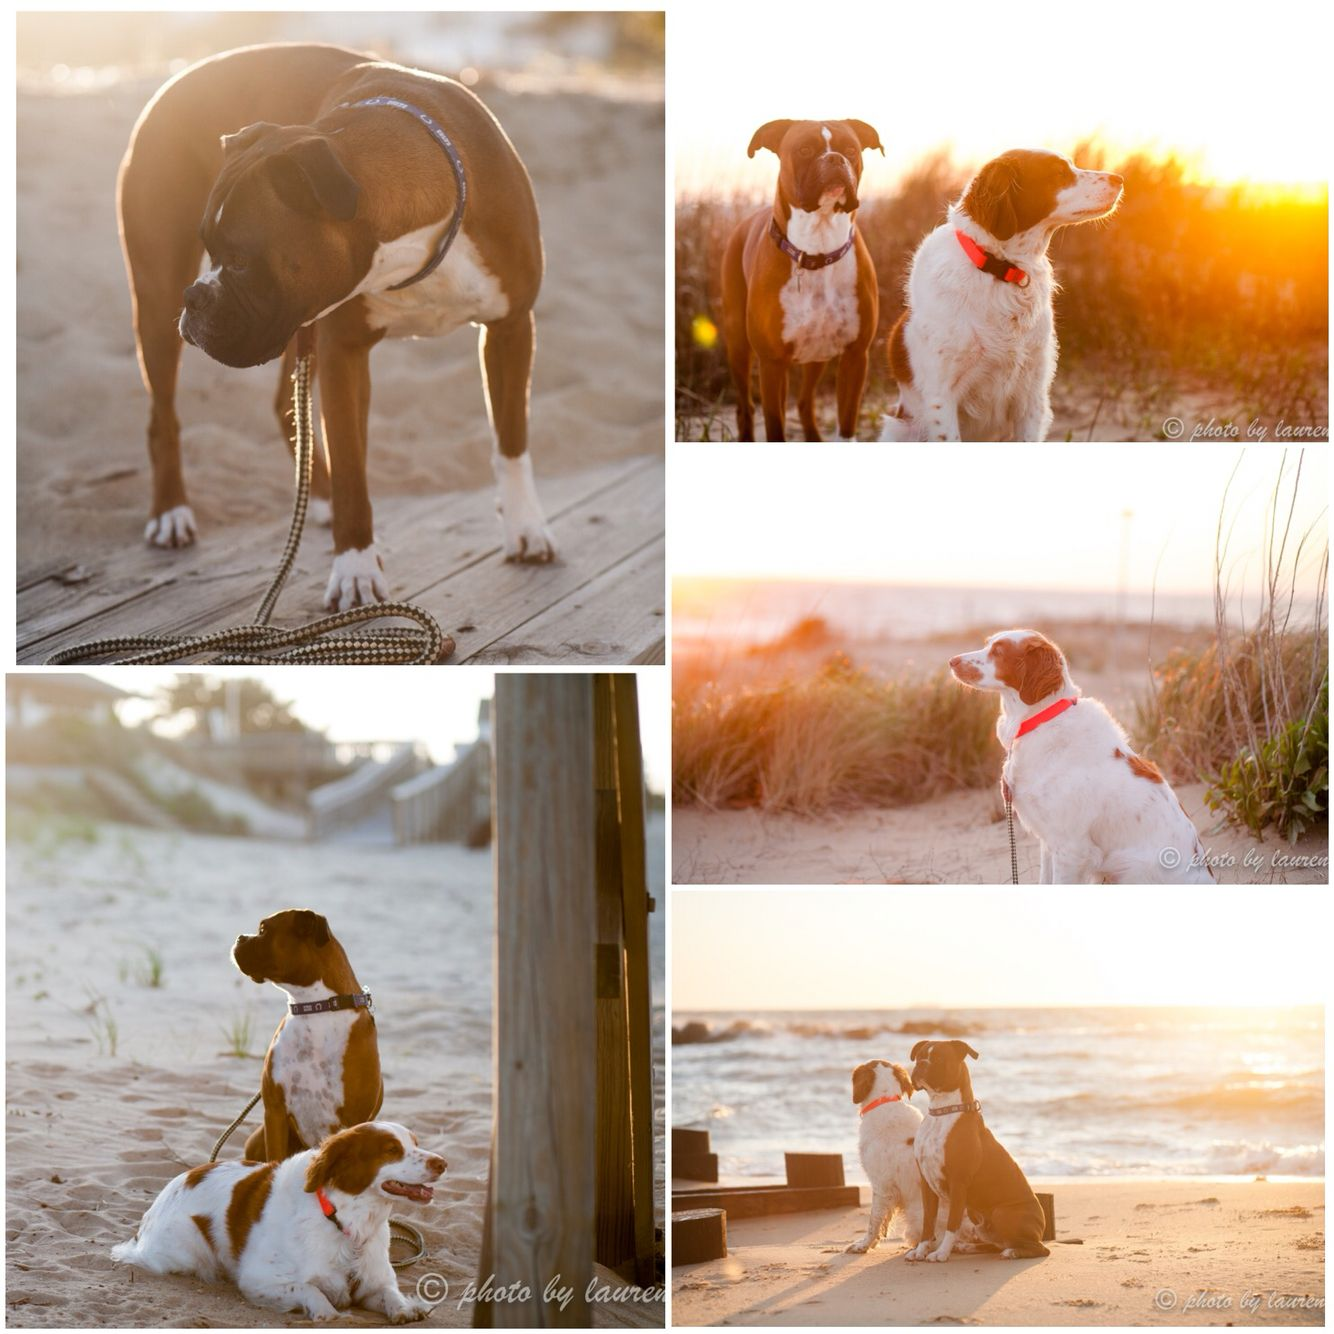 Sunset to sunrise! A little pet photography here at Ocean View Beach Park in Norfolk, VA. This spot would be perfect for family photography or some engagement photos!